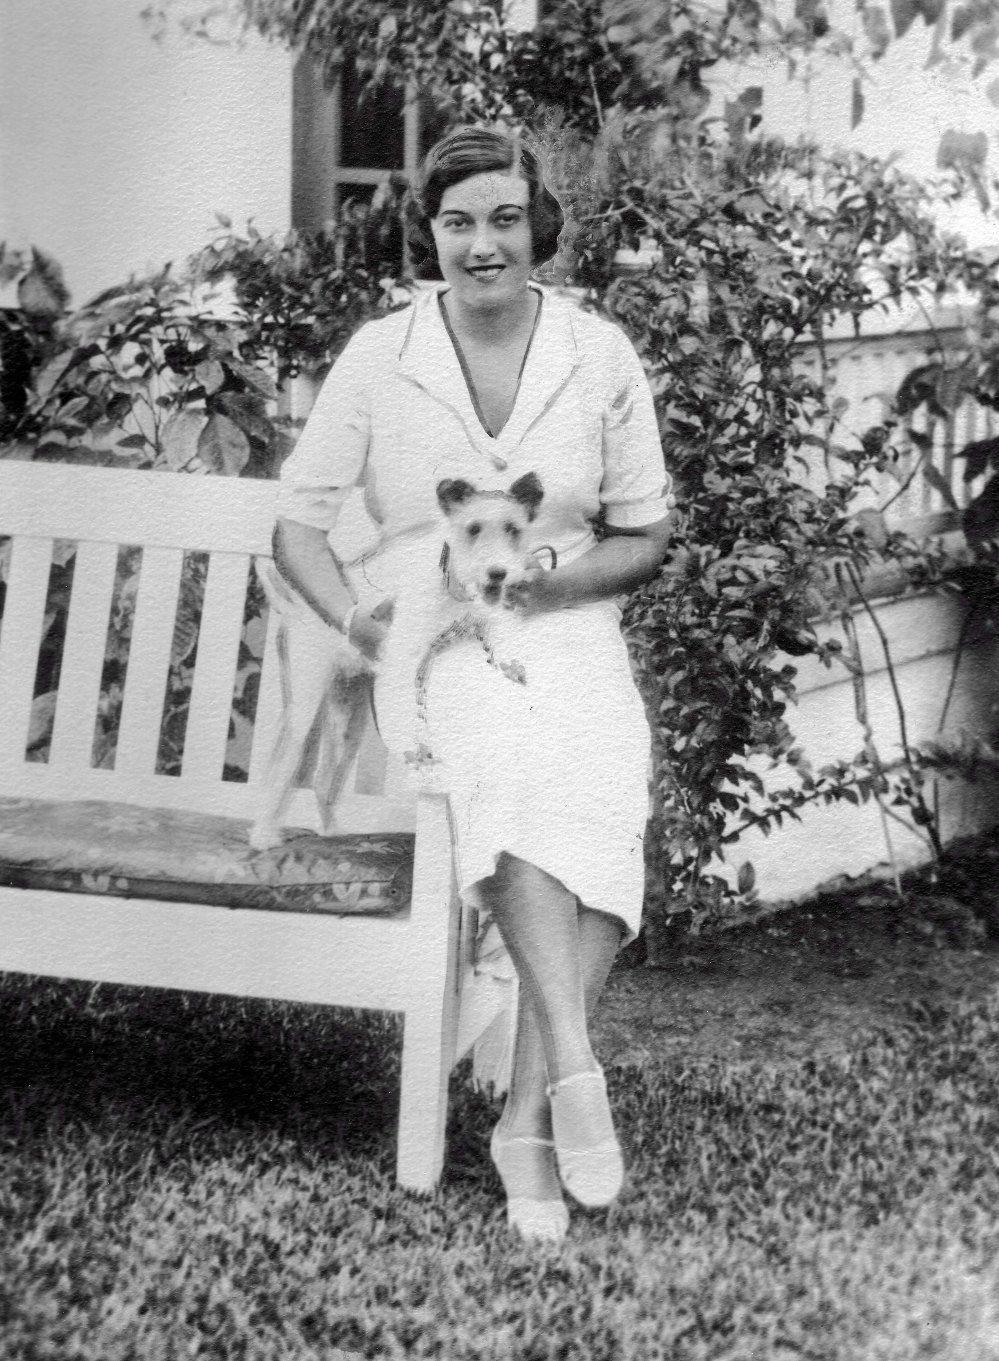 Elise in Palm Springs, Florida, 1932. This photograph was published on the front page of the May 28, 1934 Albany Evening News with the announcement of her engagement to a Albert Carlier. Used by permission of Times Union.